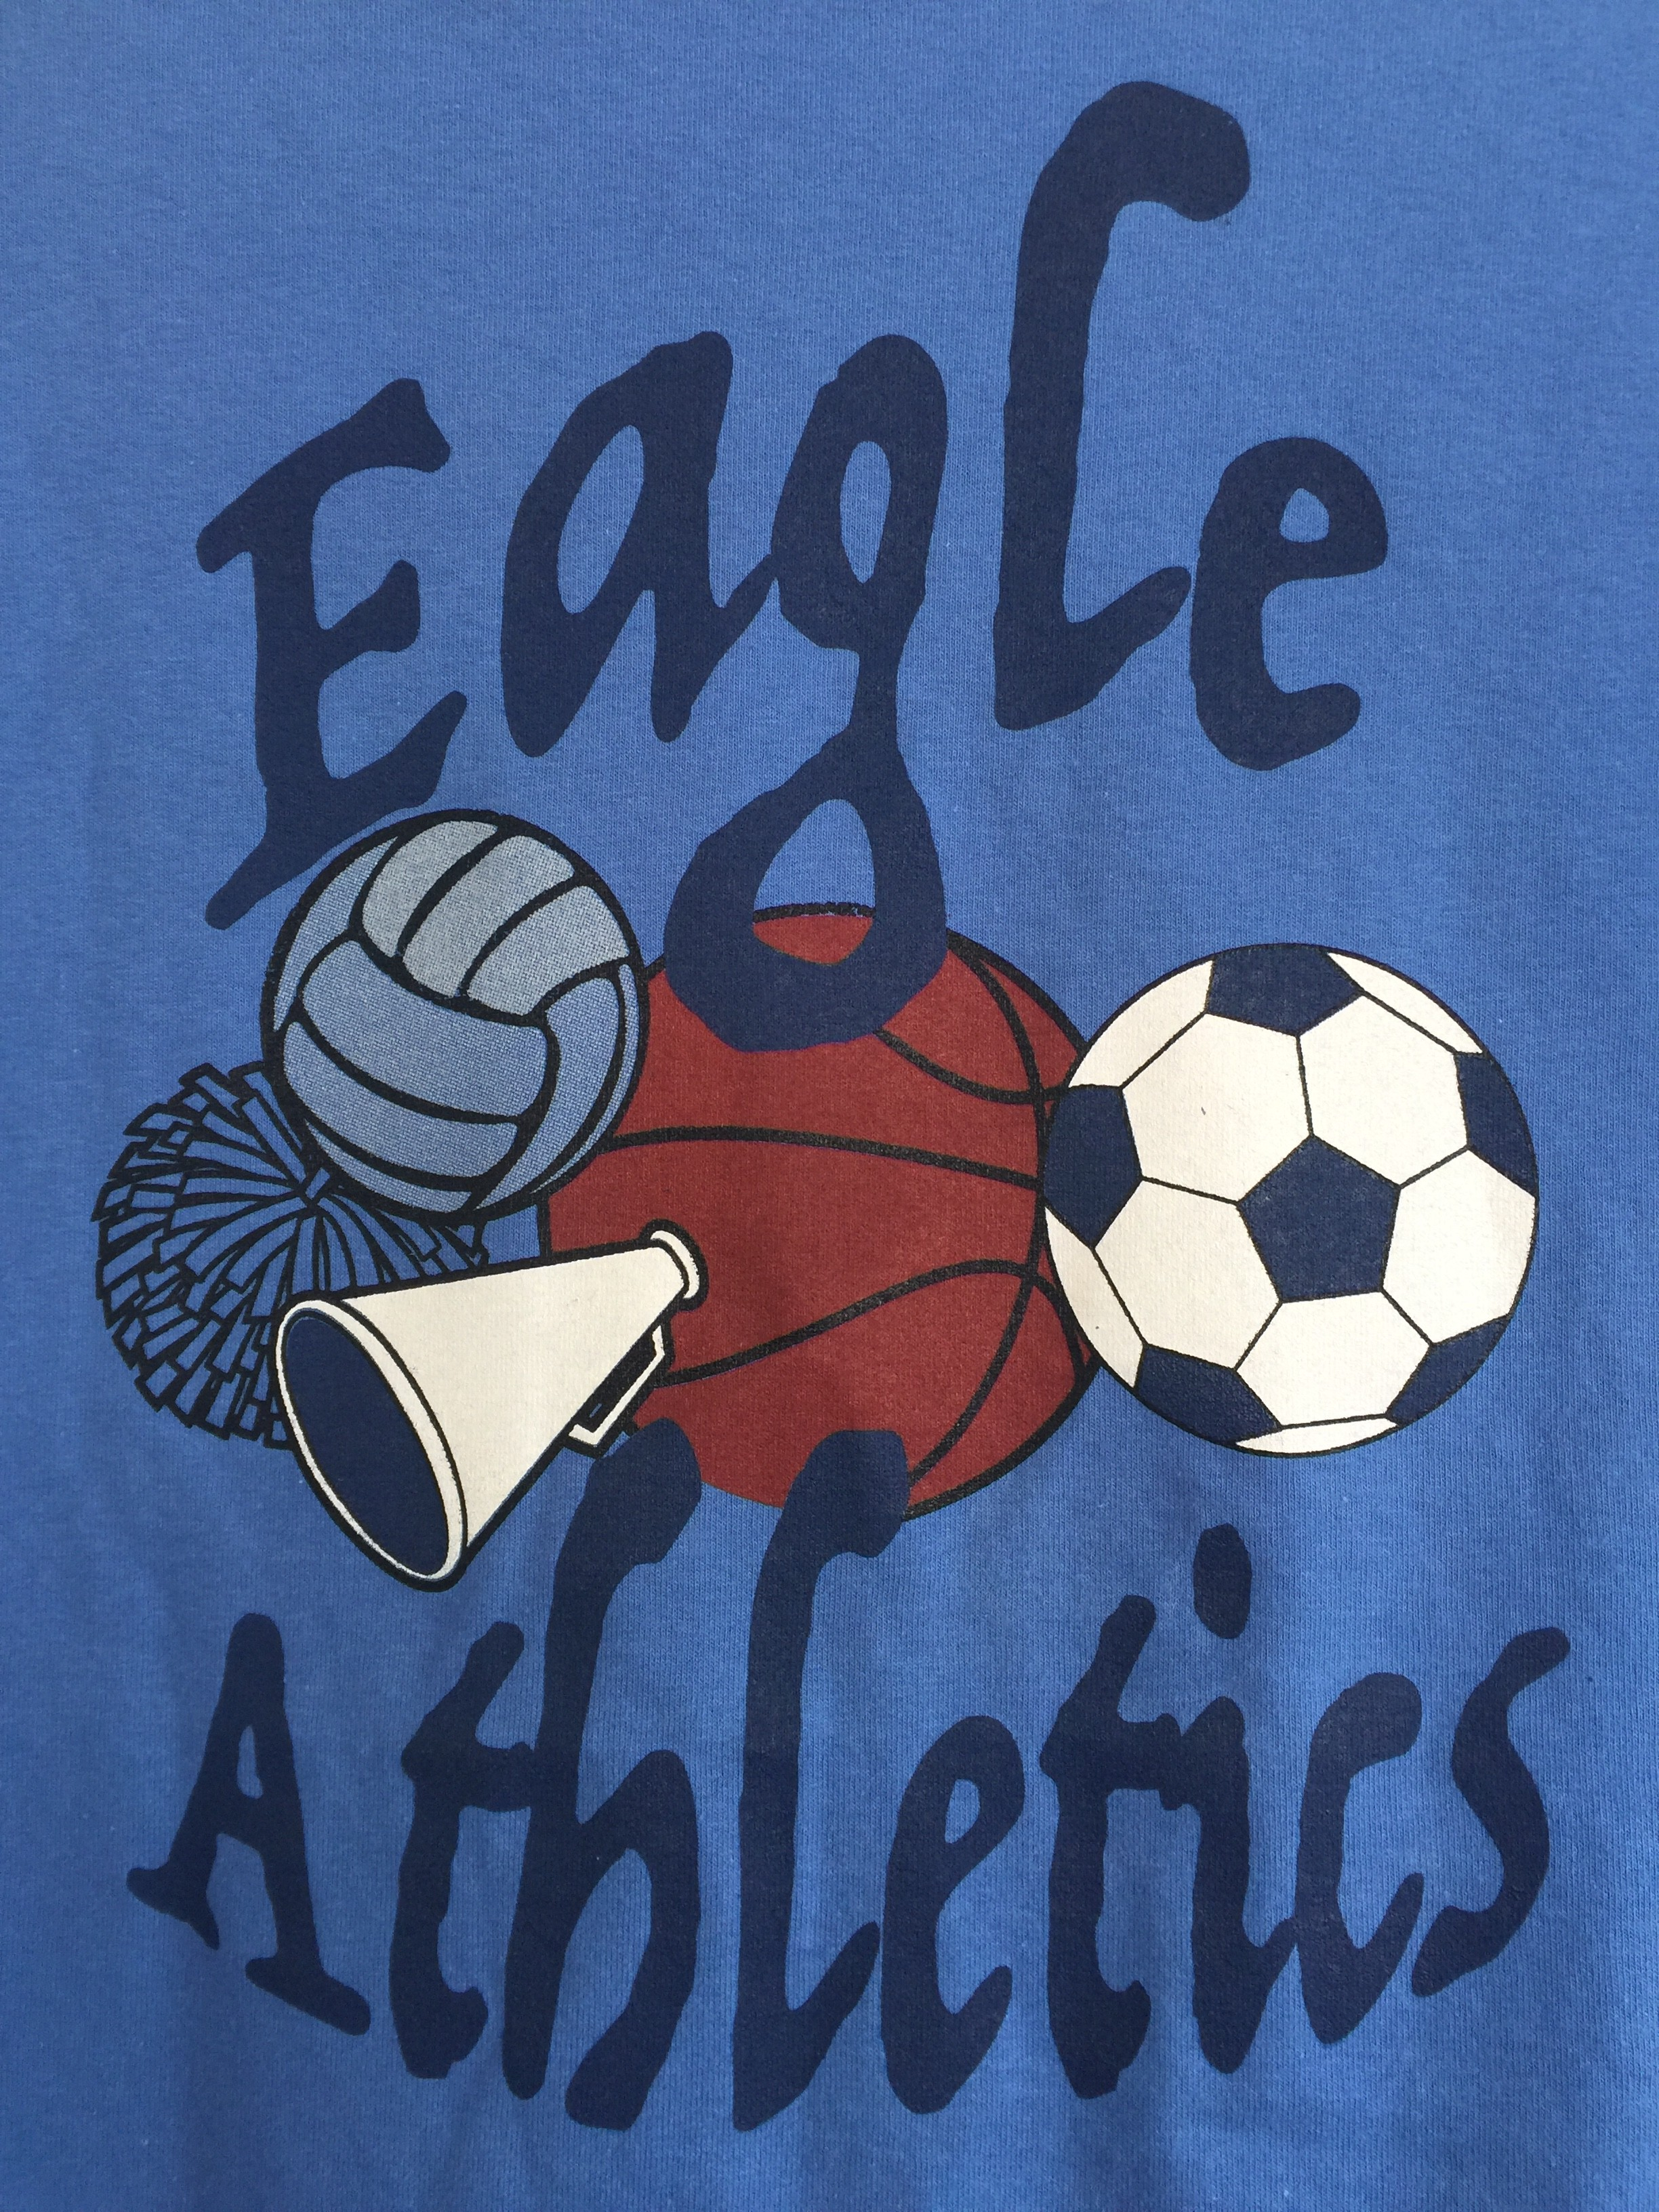 Eagle Athletic T-Shirts!